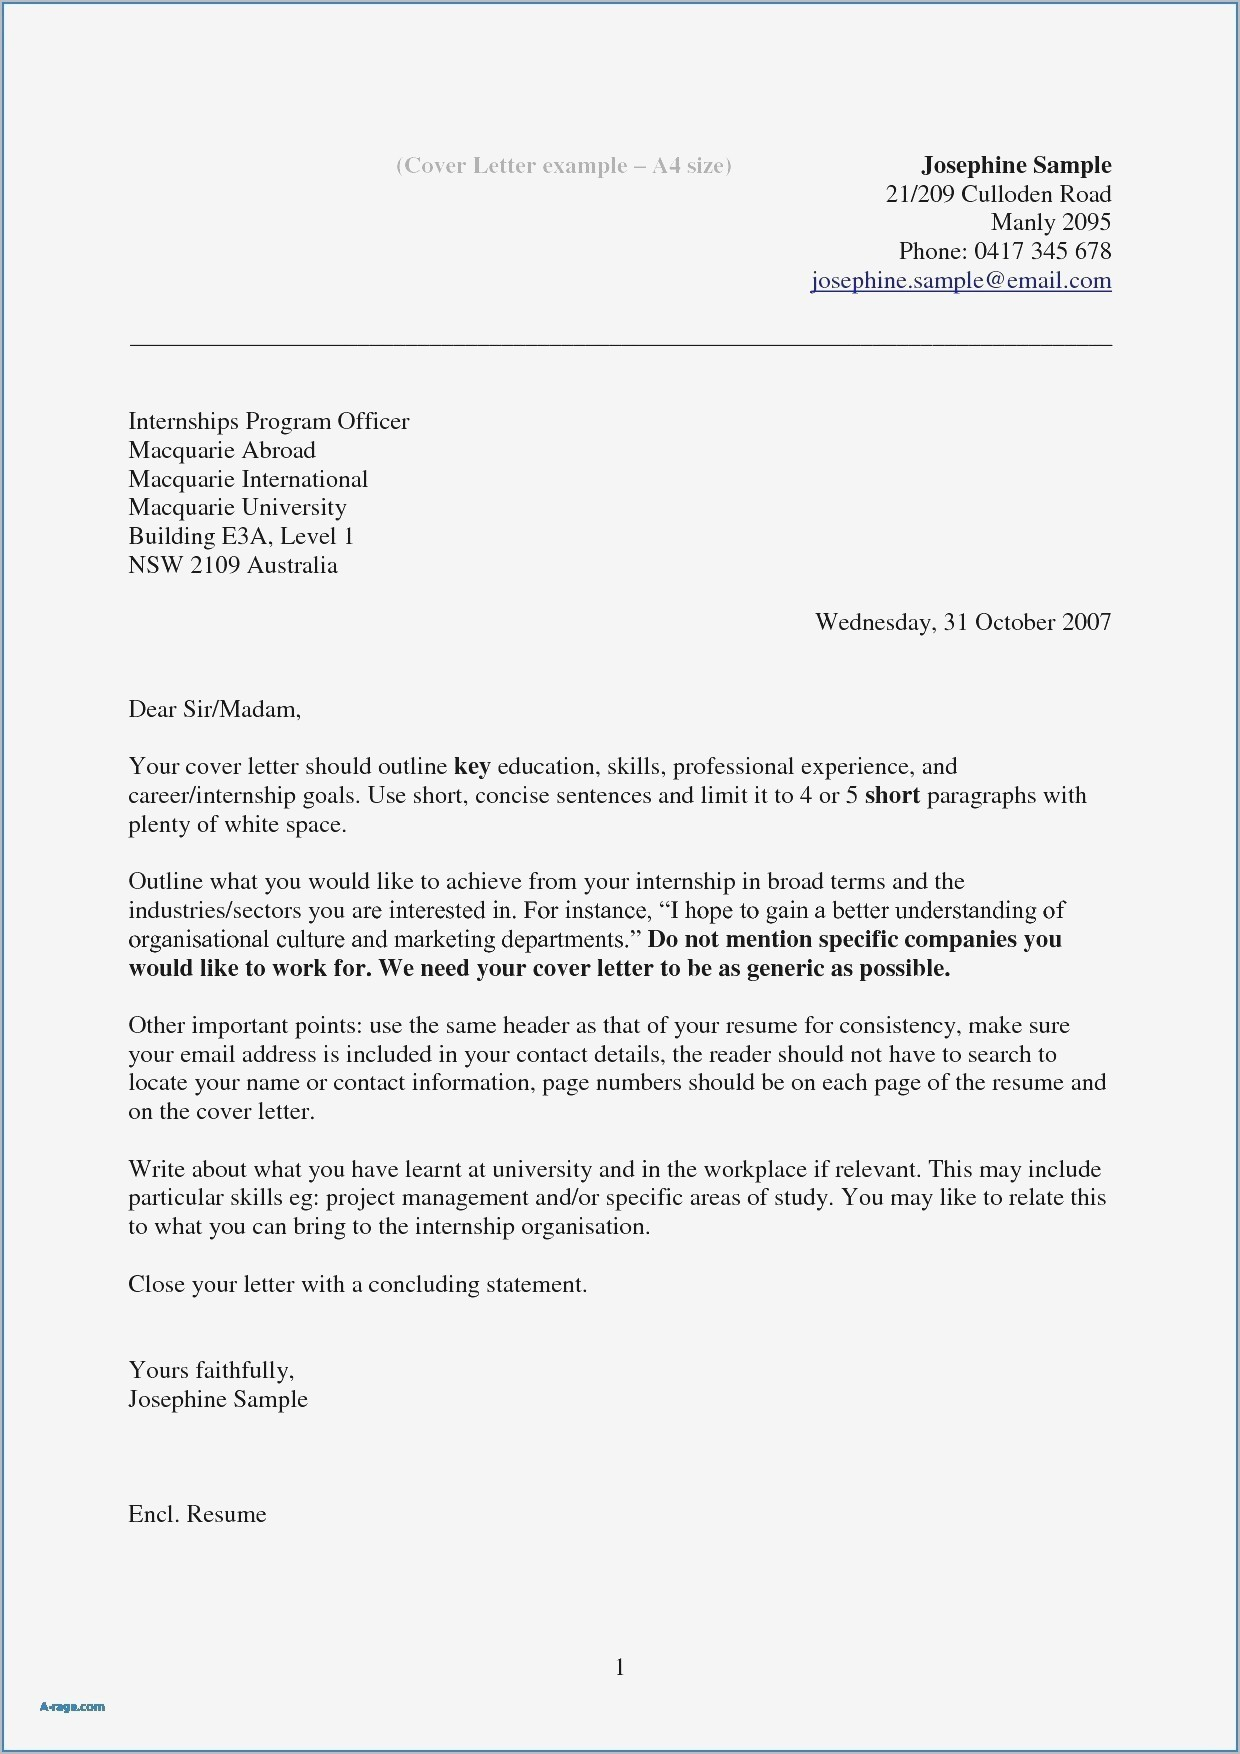 Free Letter Of Understanding Template - Free Resume Cover Letter Beautiful Best Pr Resume Template Elegant